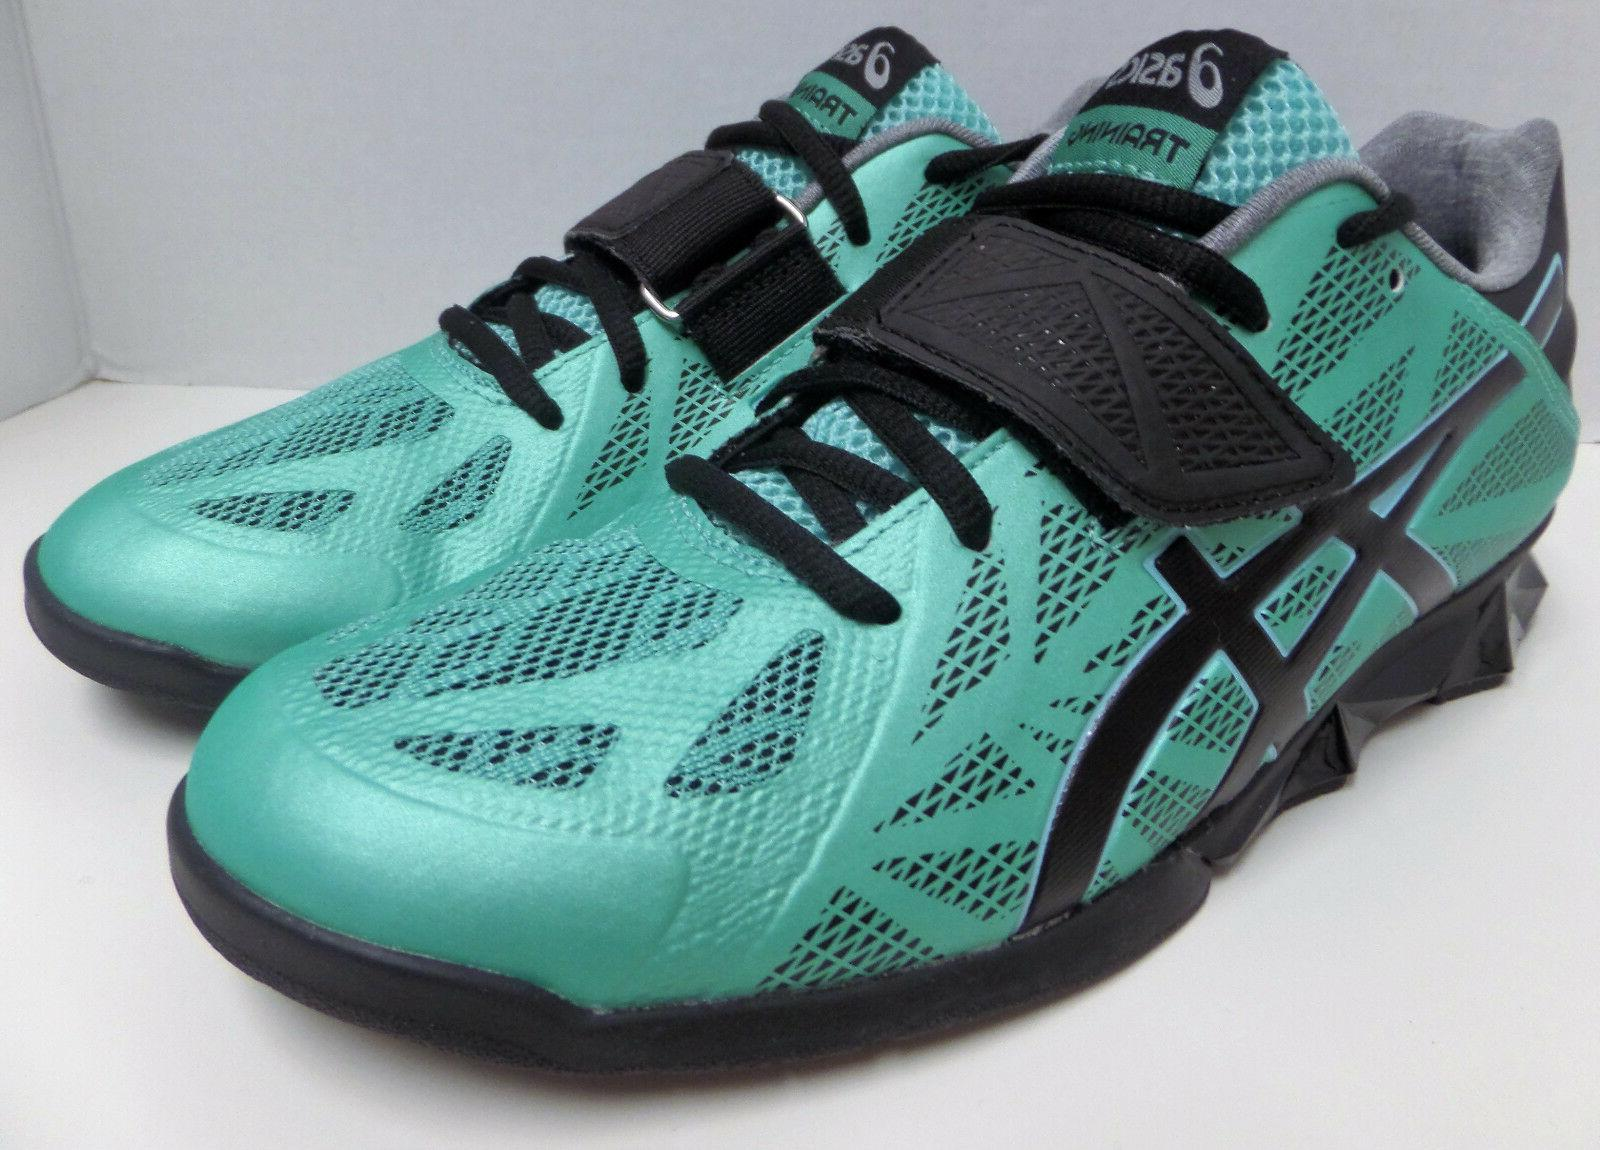 Weight Lifting Shoes Teal/Black/Silver